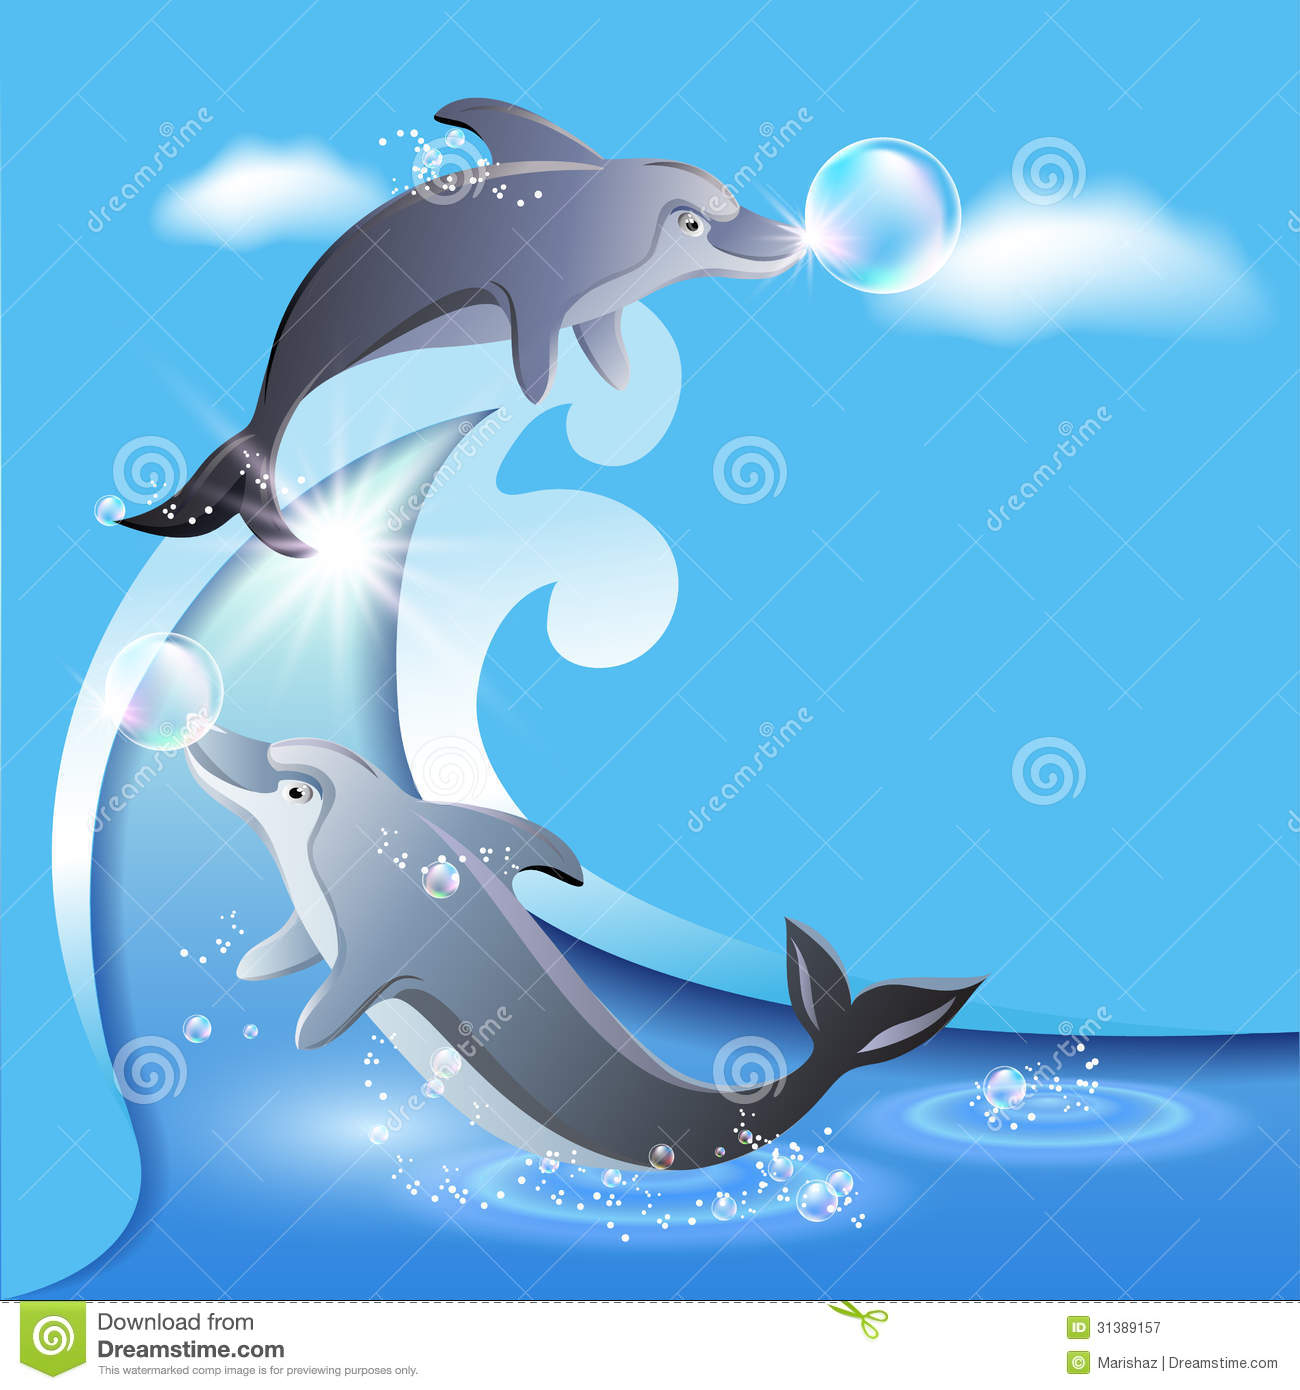 Flyer Template With Two Dolphins Stock Vector - Illustration of ...